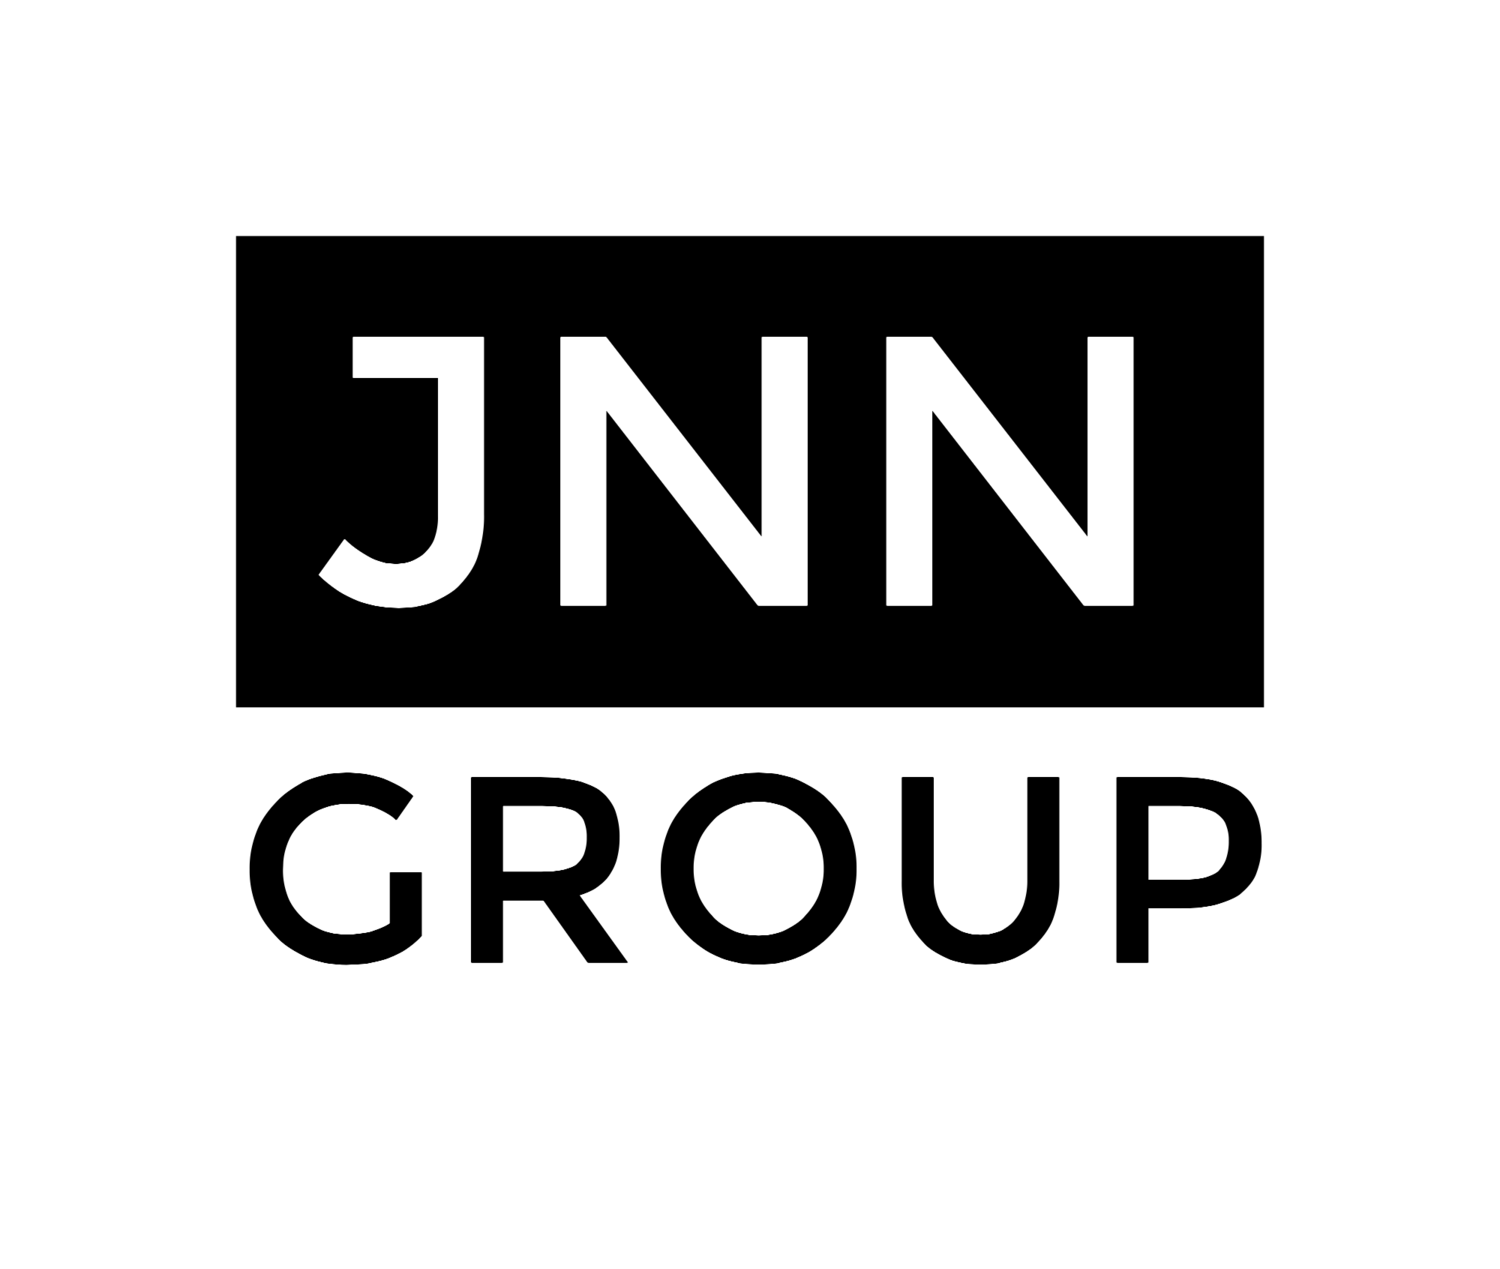 JNN GROUP, INC